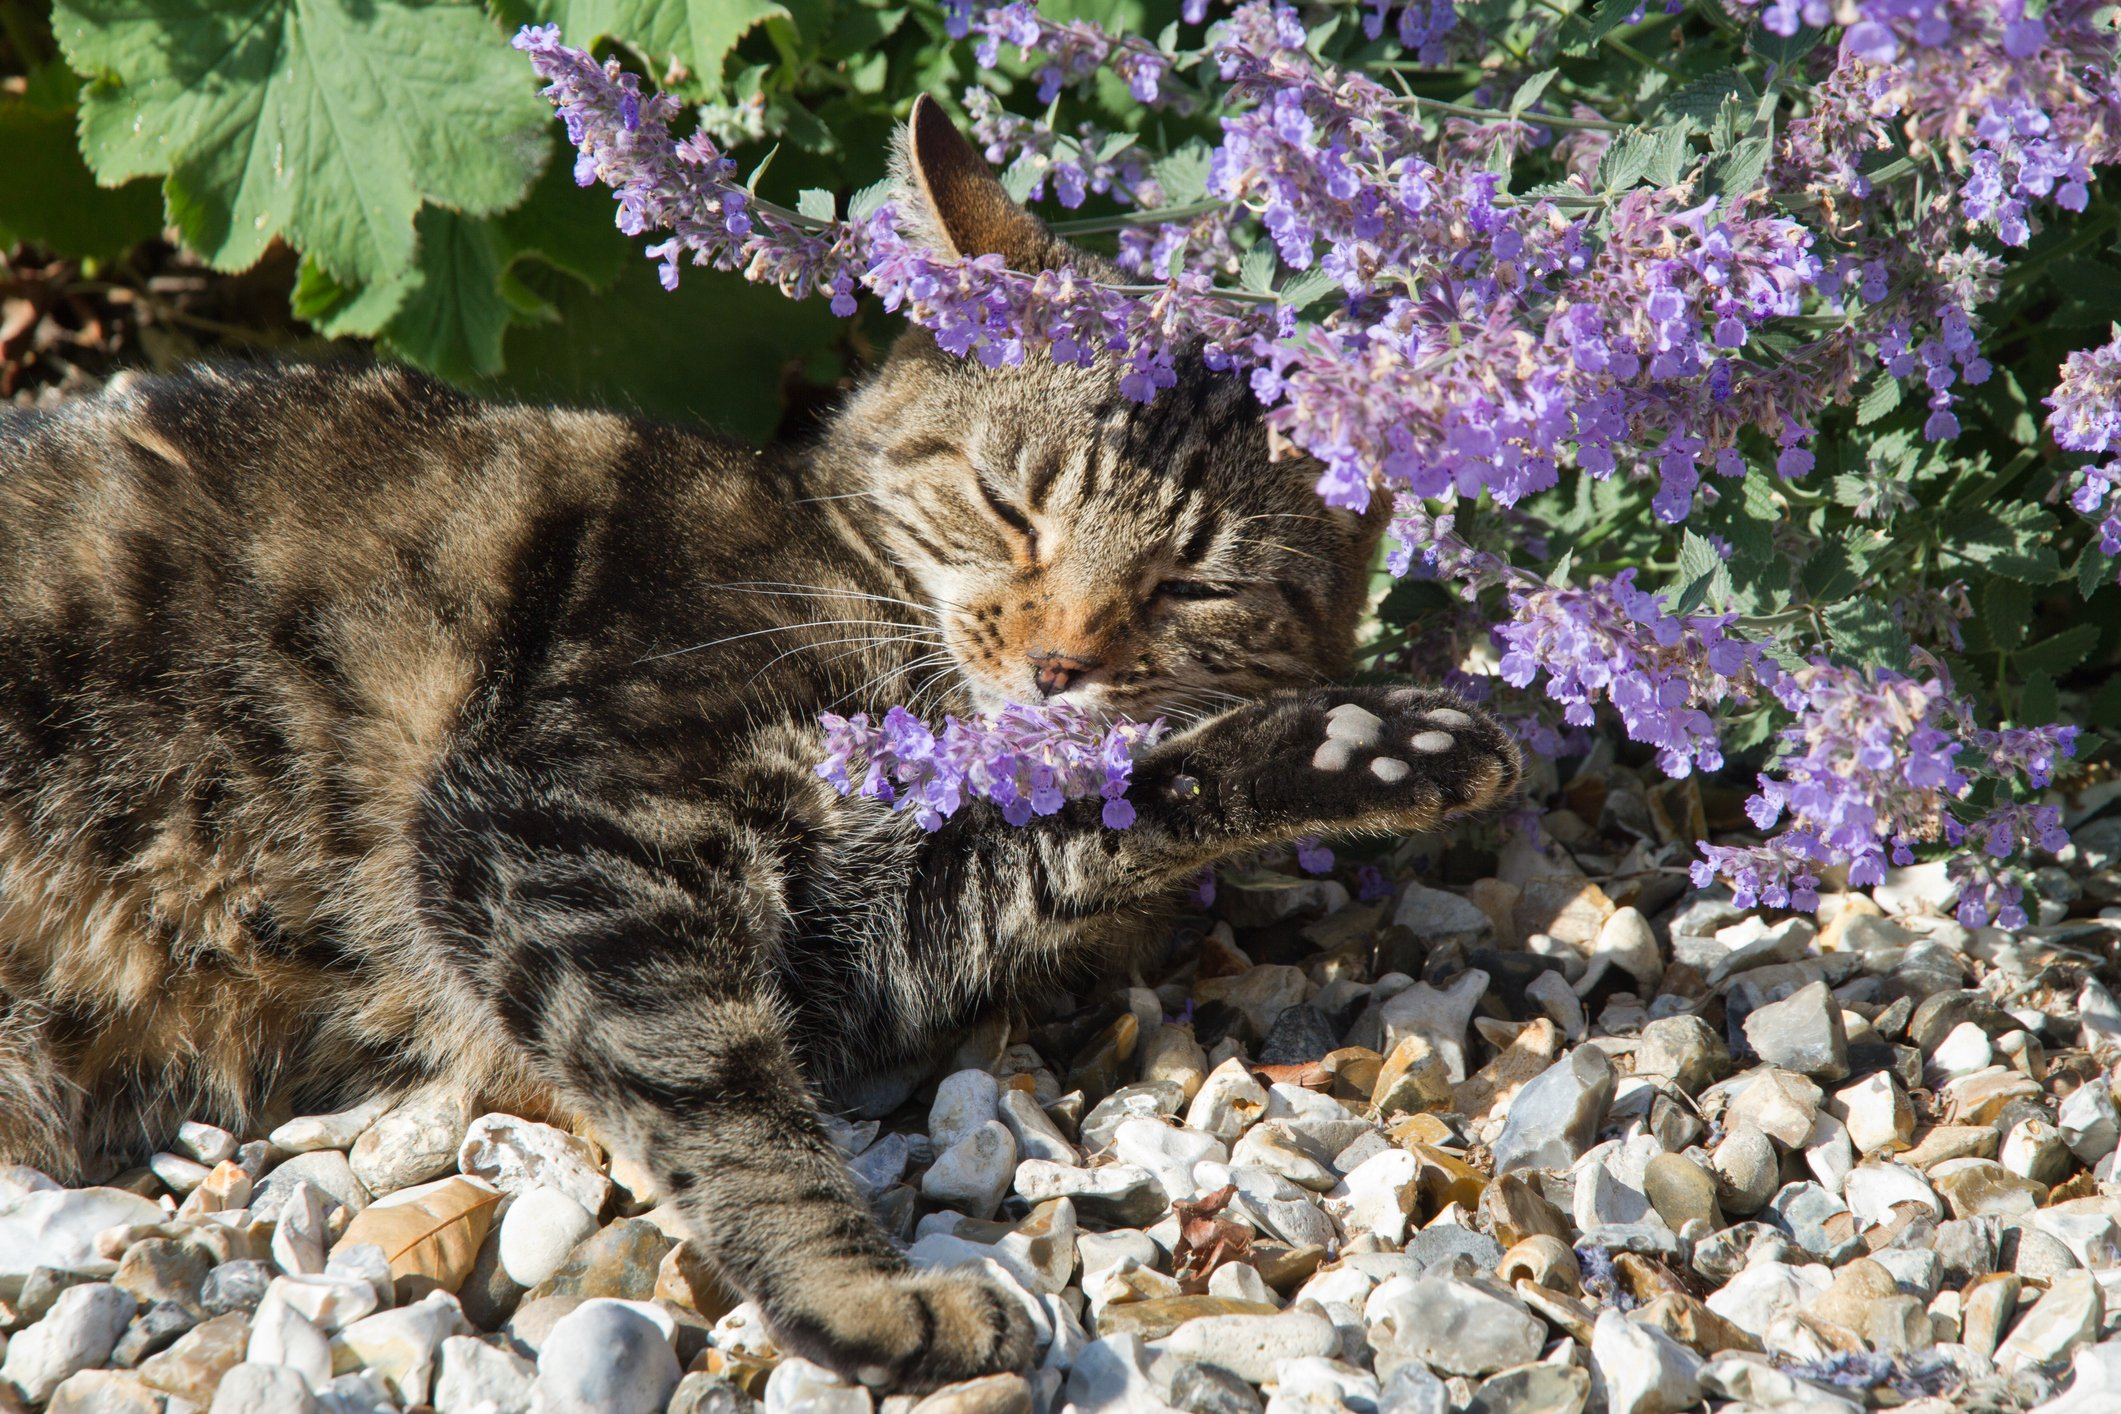 Happy Cat lying under Catmint (Nepeta) and smelling flowers which typically results in euphoria.